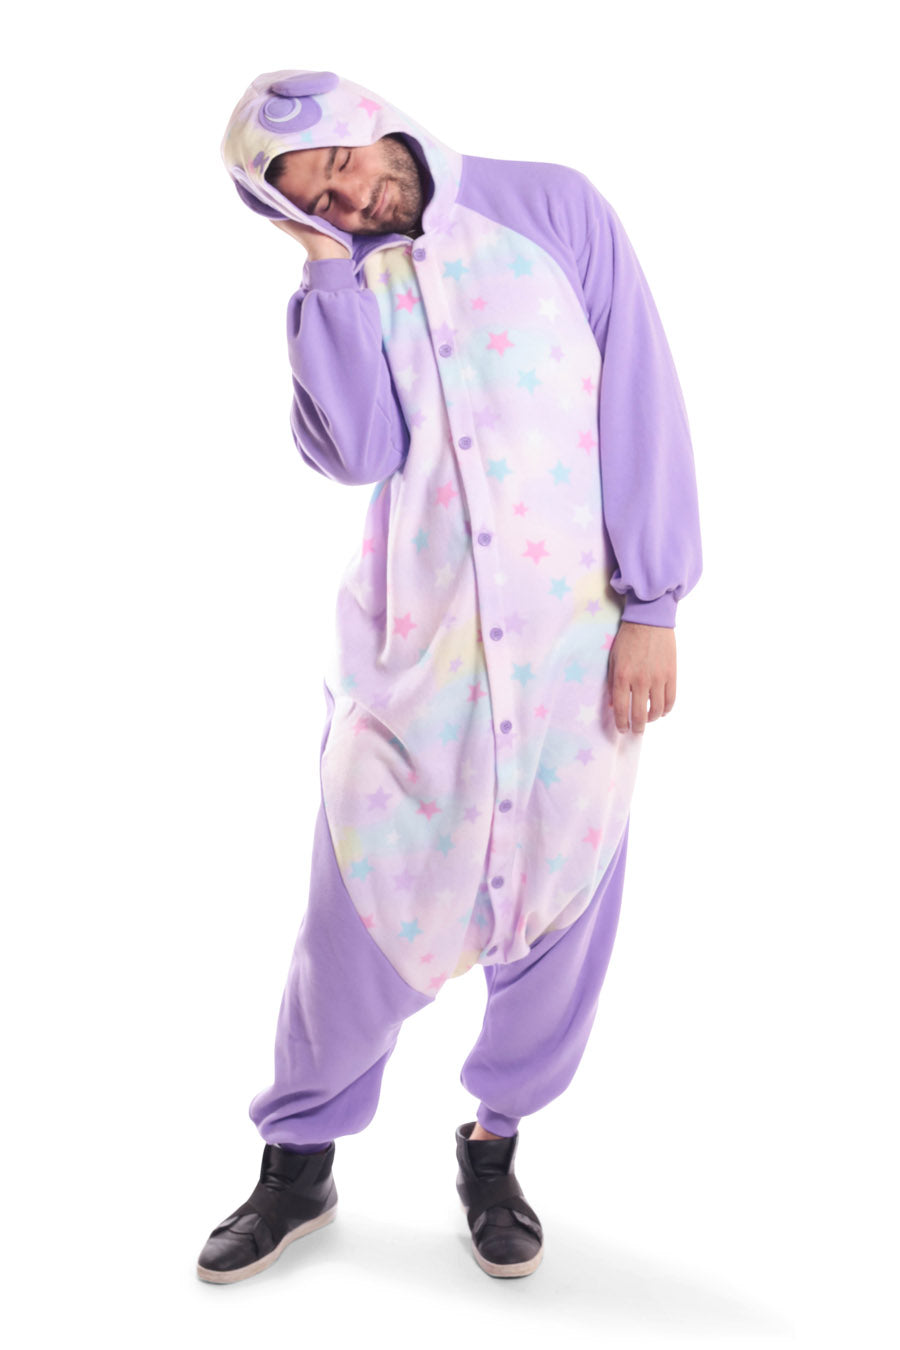 Pastel Dream Panda X-Tall Animal Kigurumi Adult Onesie Costume Pajamas Purple Stars Front Sleep Main